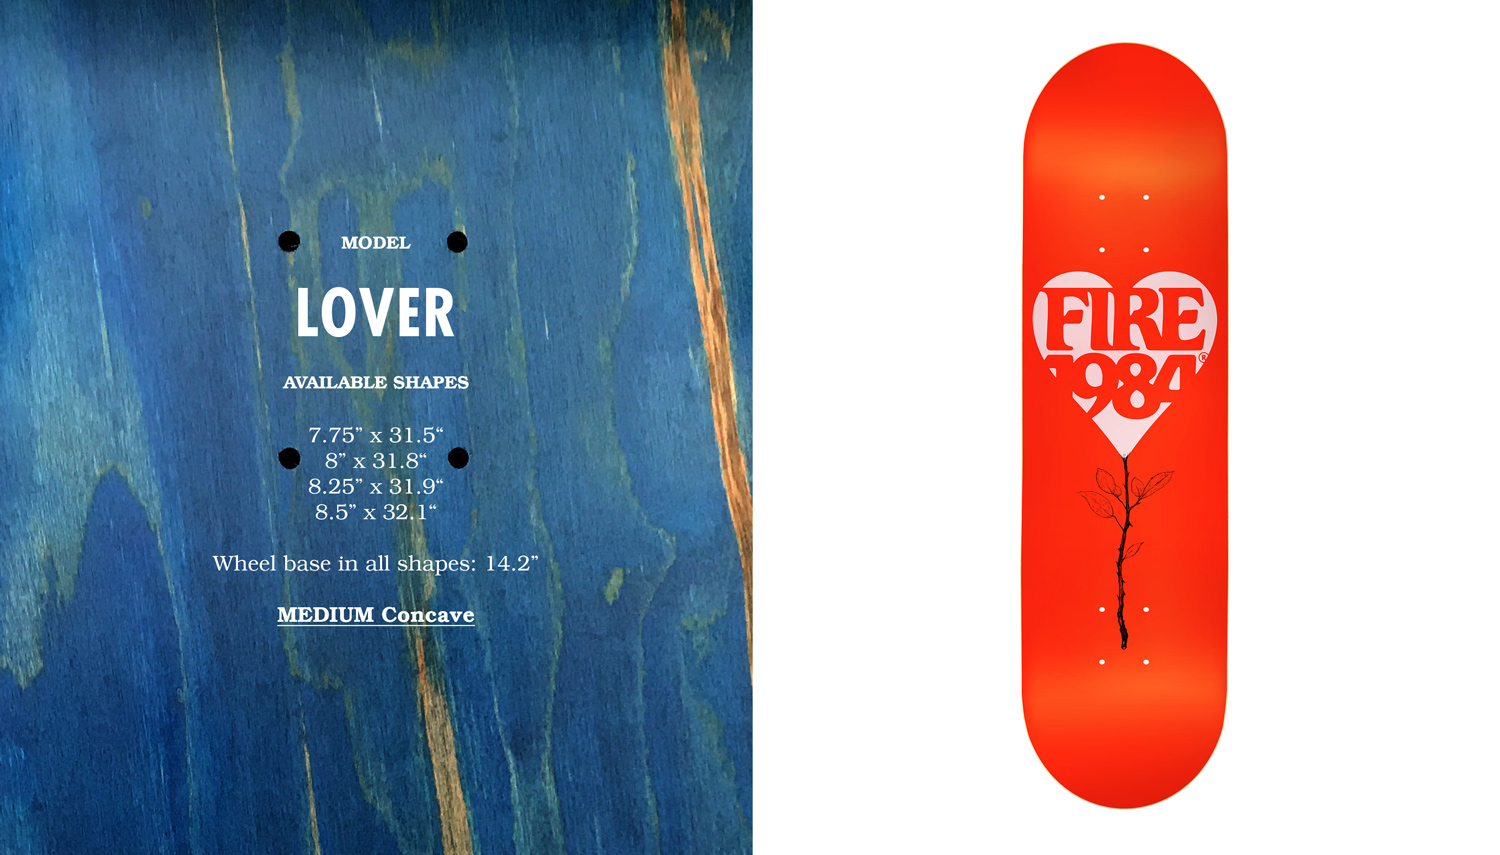 FIRE1984 catalog 20171 deck lover